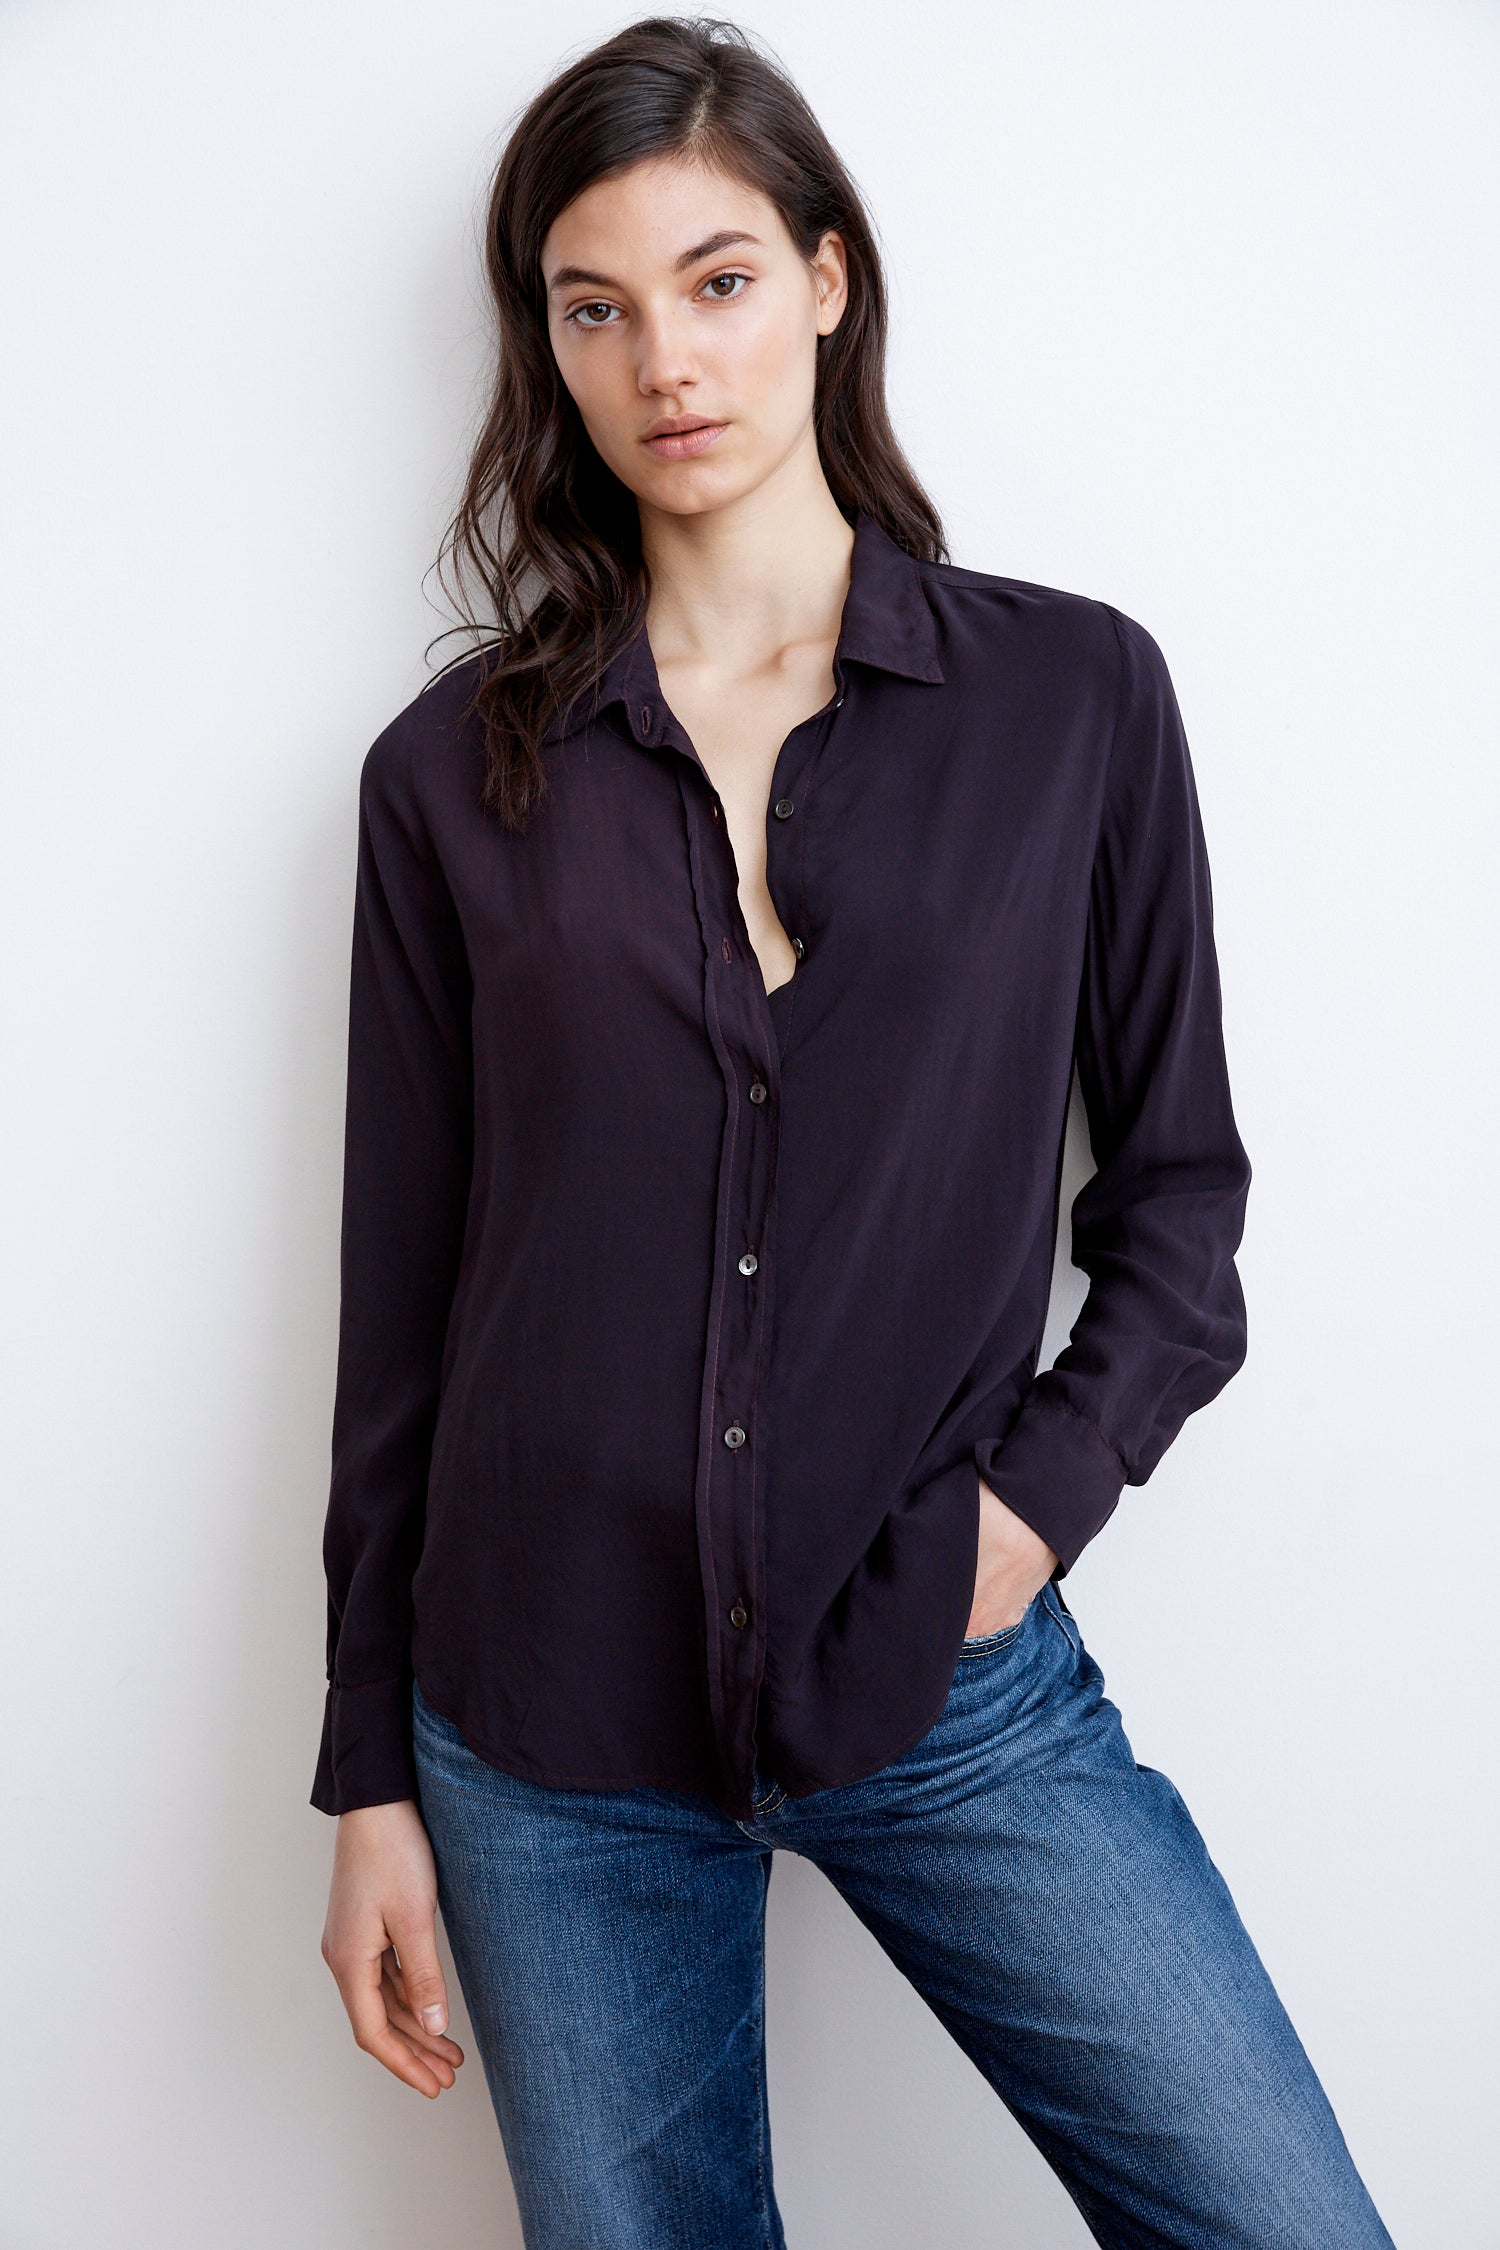 MELBA RAYON CHALLIS BUTTON UP SHIRT IN CHICORY